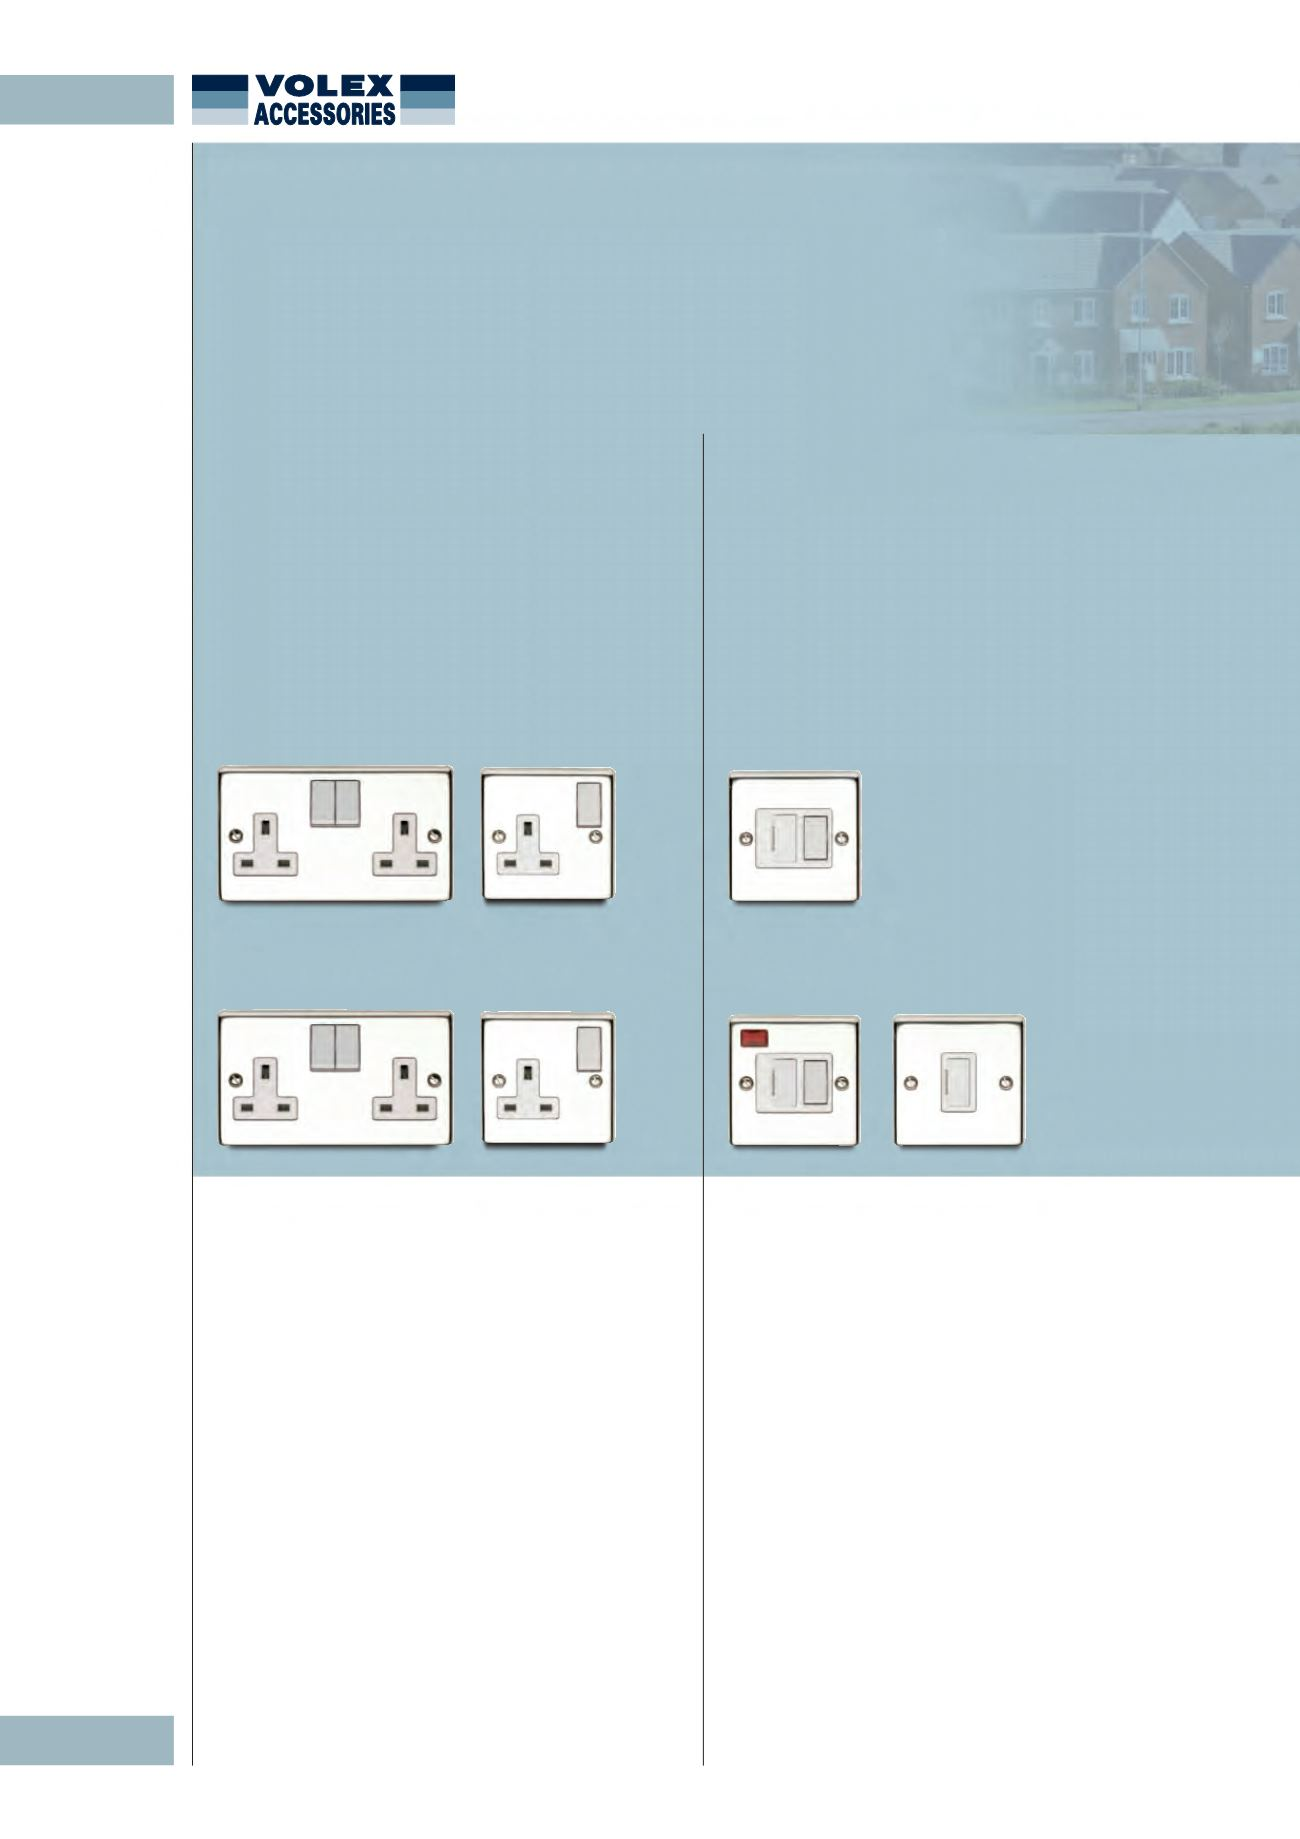 volex switch wiring diagram 3 way switch wiring diagram junction box with load in middle line at one switch